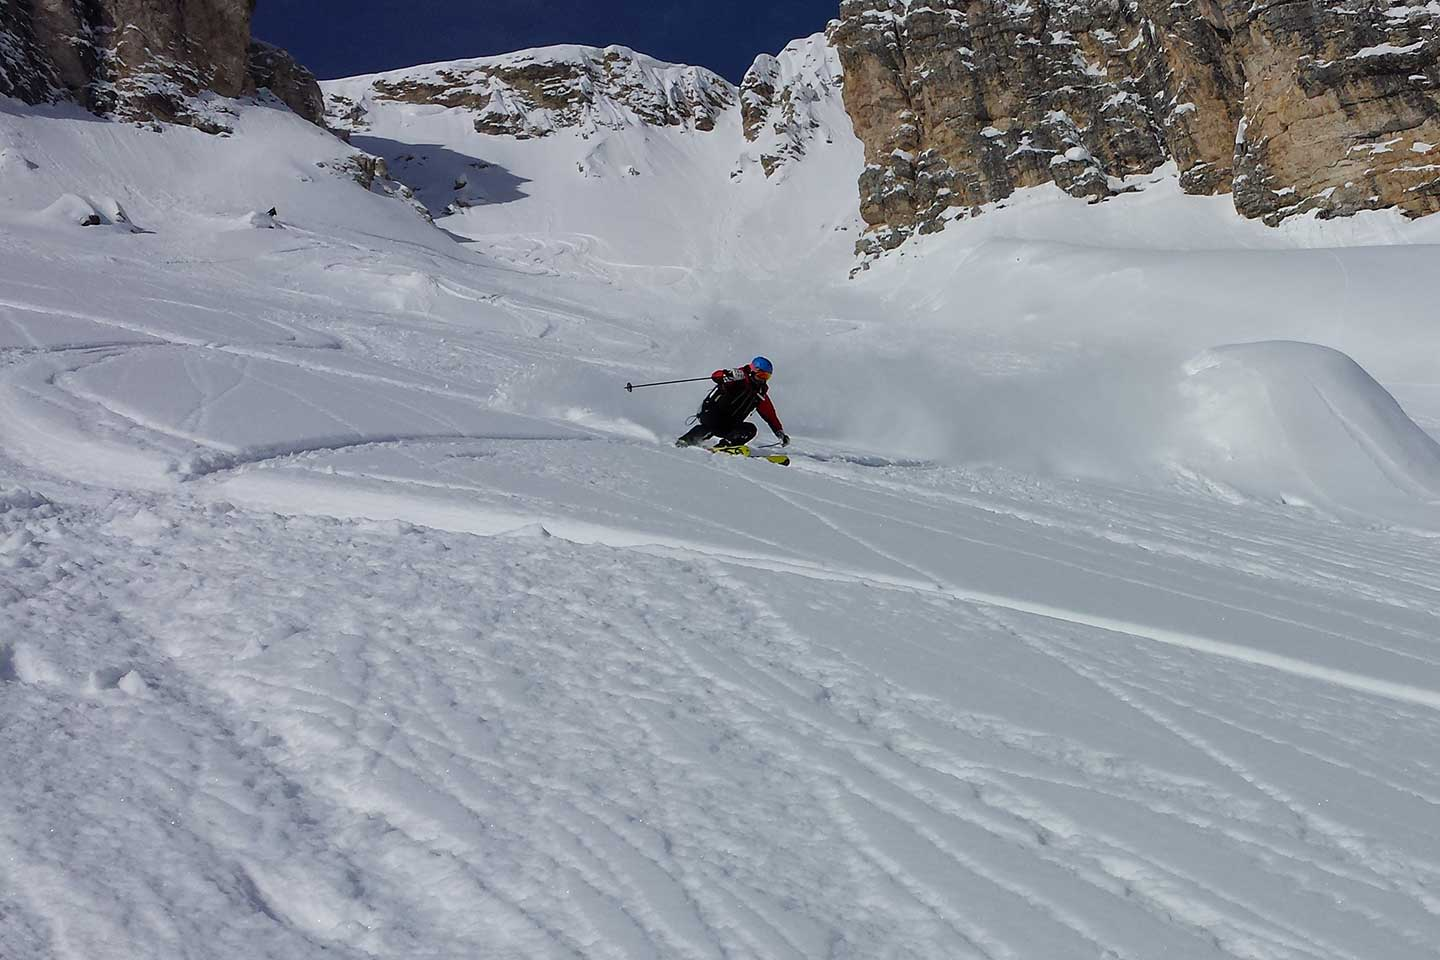 Ski Mountaineering at the Cristallo Mountain